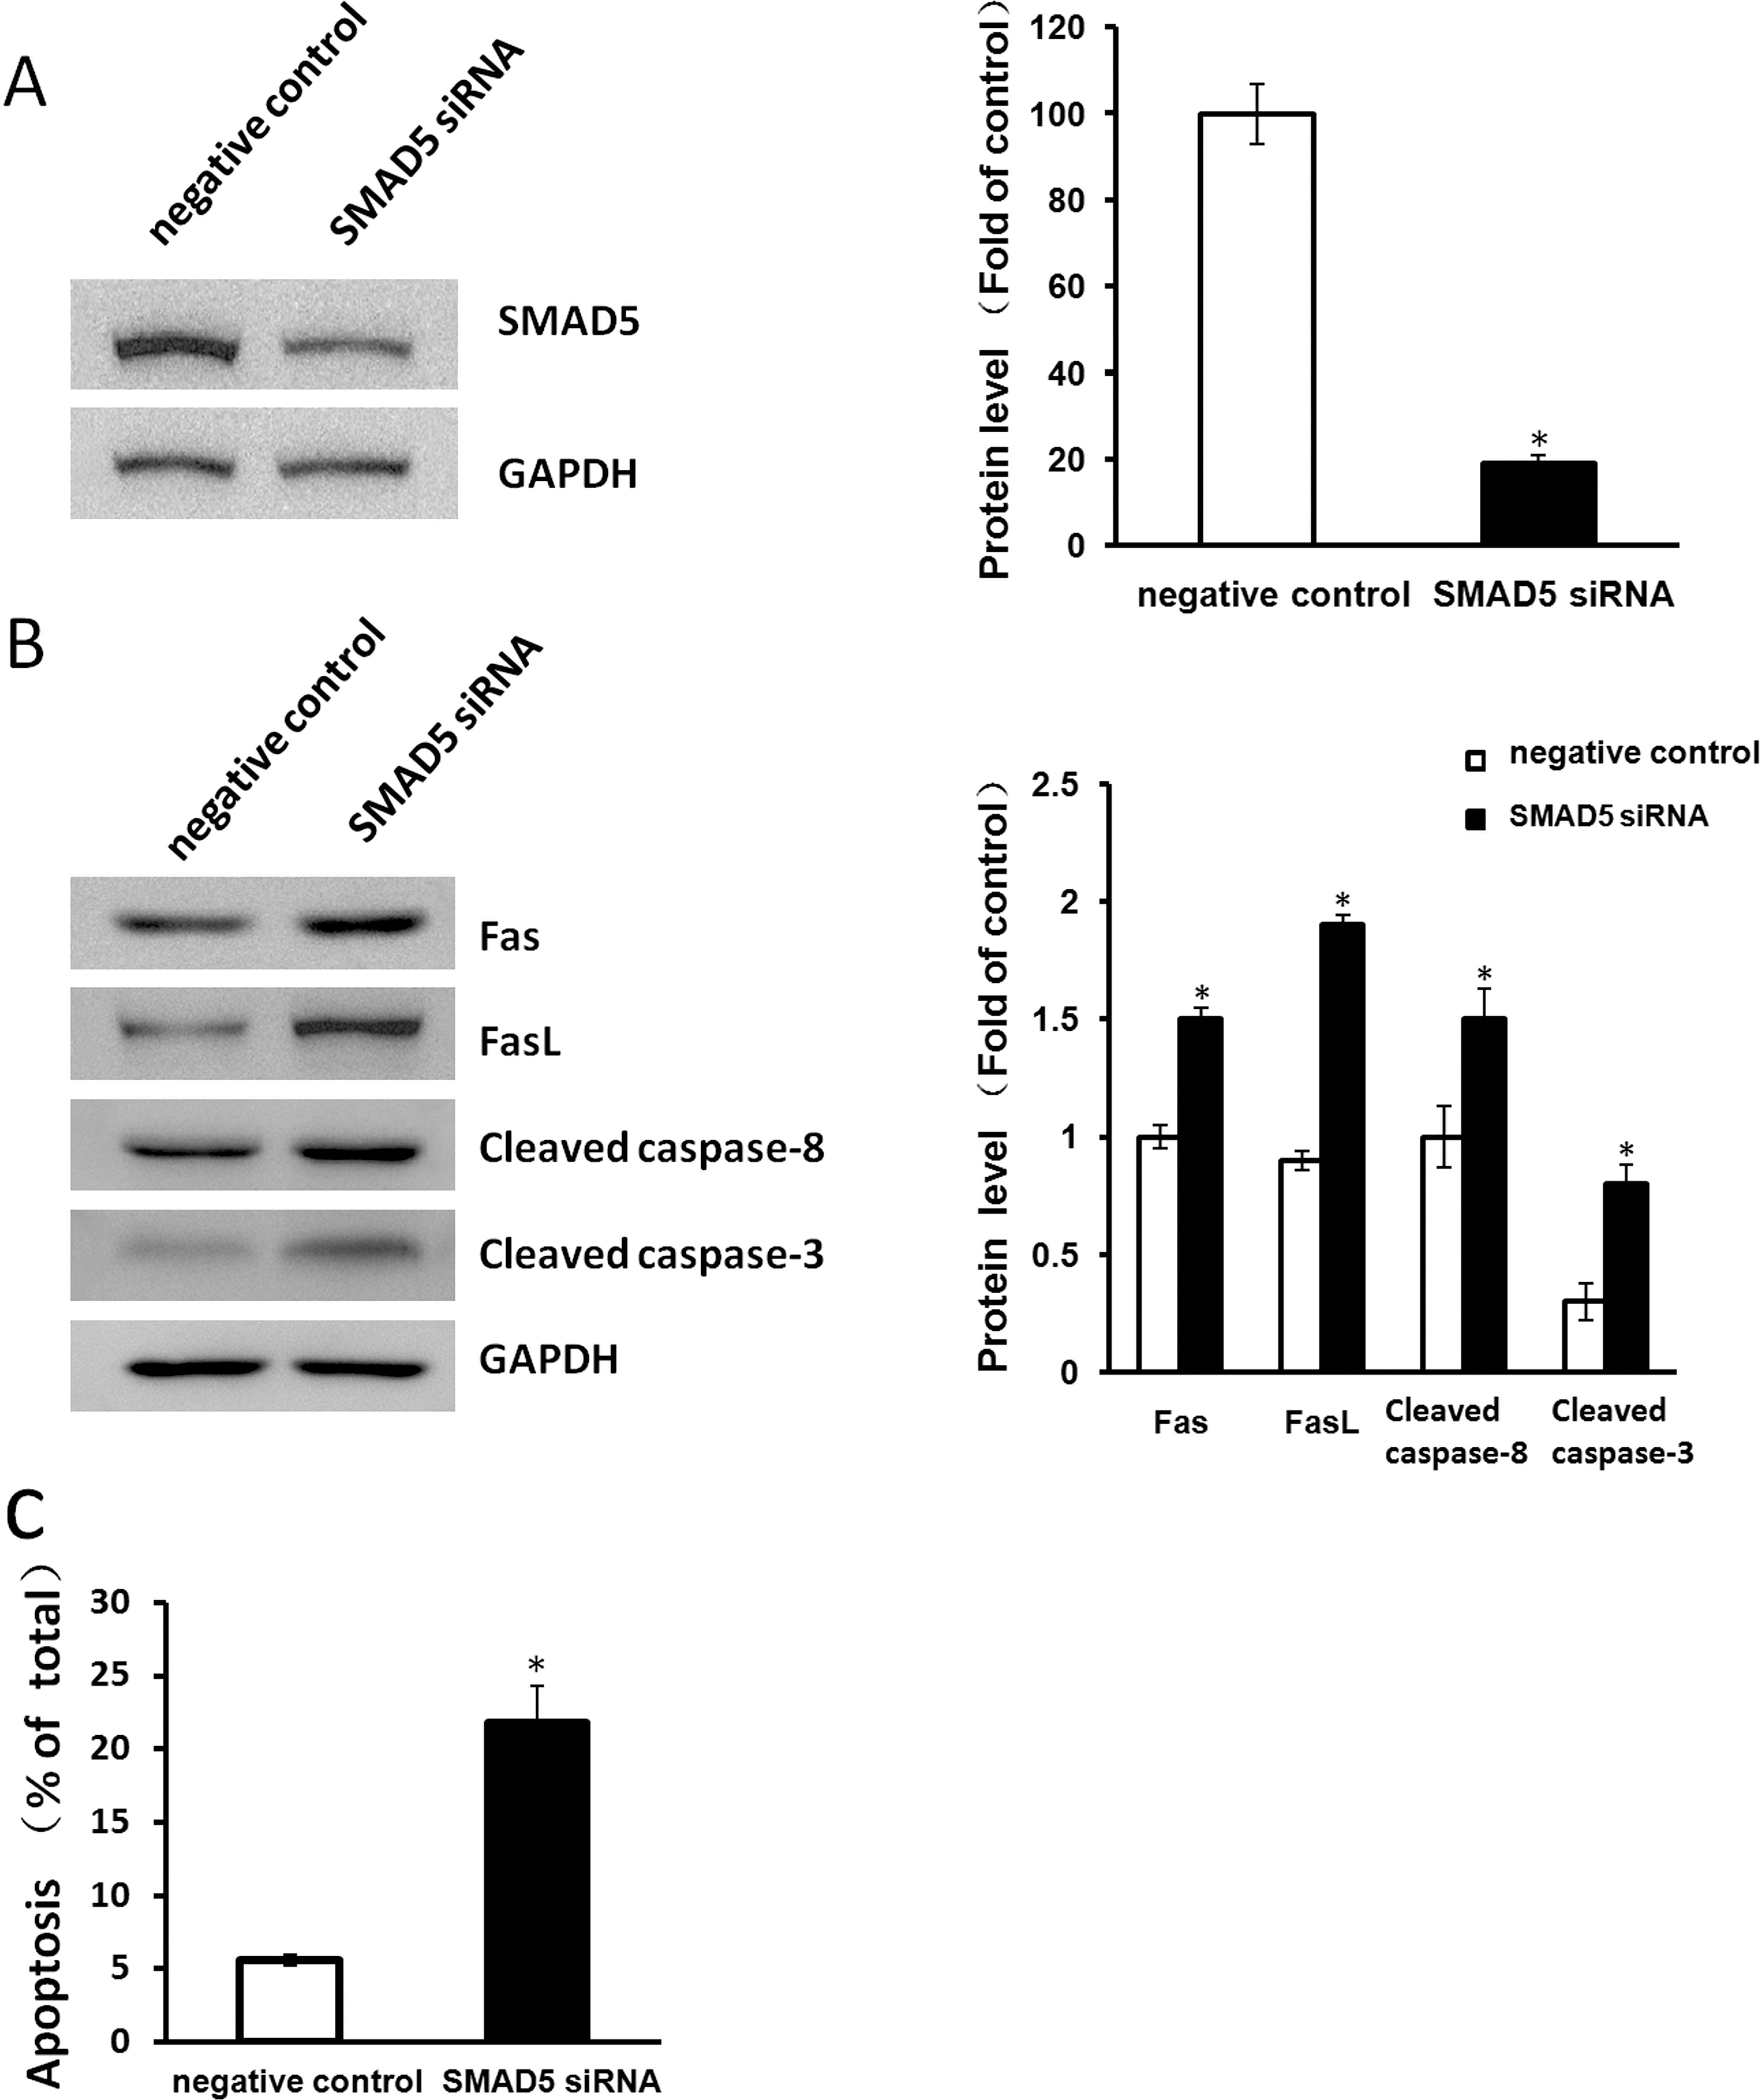 miR-23a and miR-27a Promote Human Granulosa Cell Apoptosis